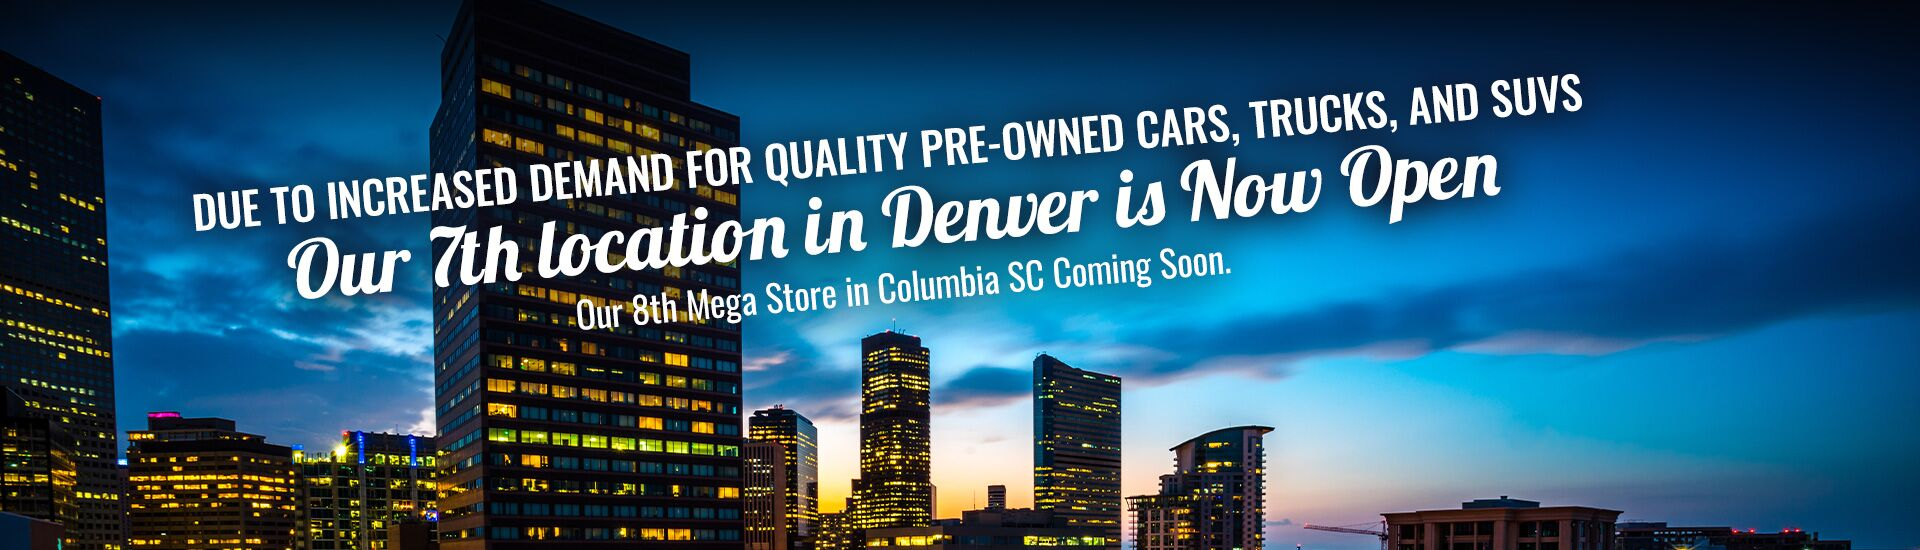 Denver Is Now Open and Columbia SC Is Coming Soon!